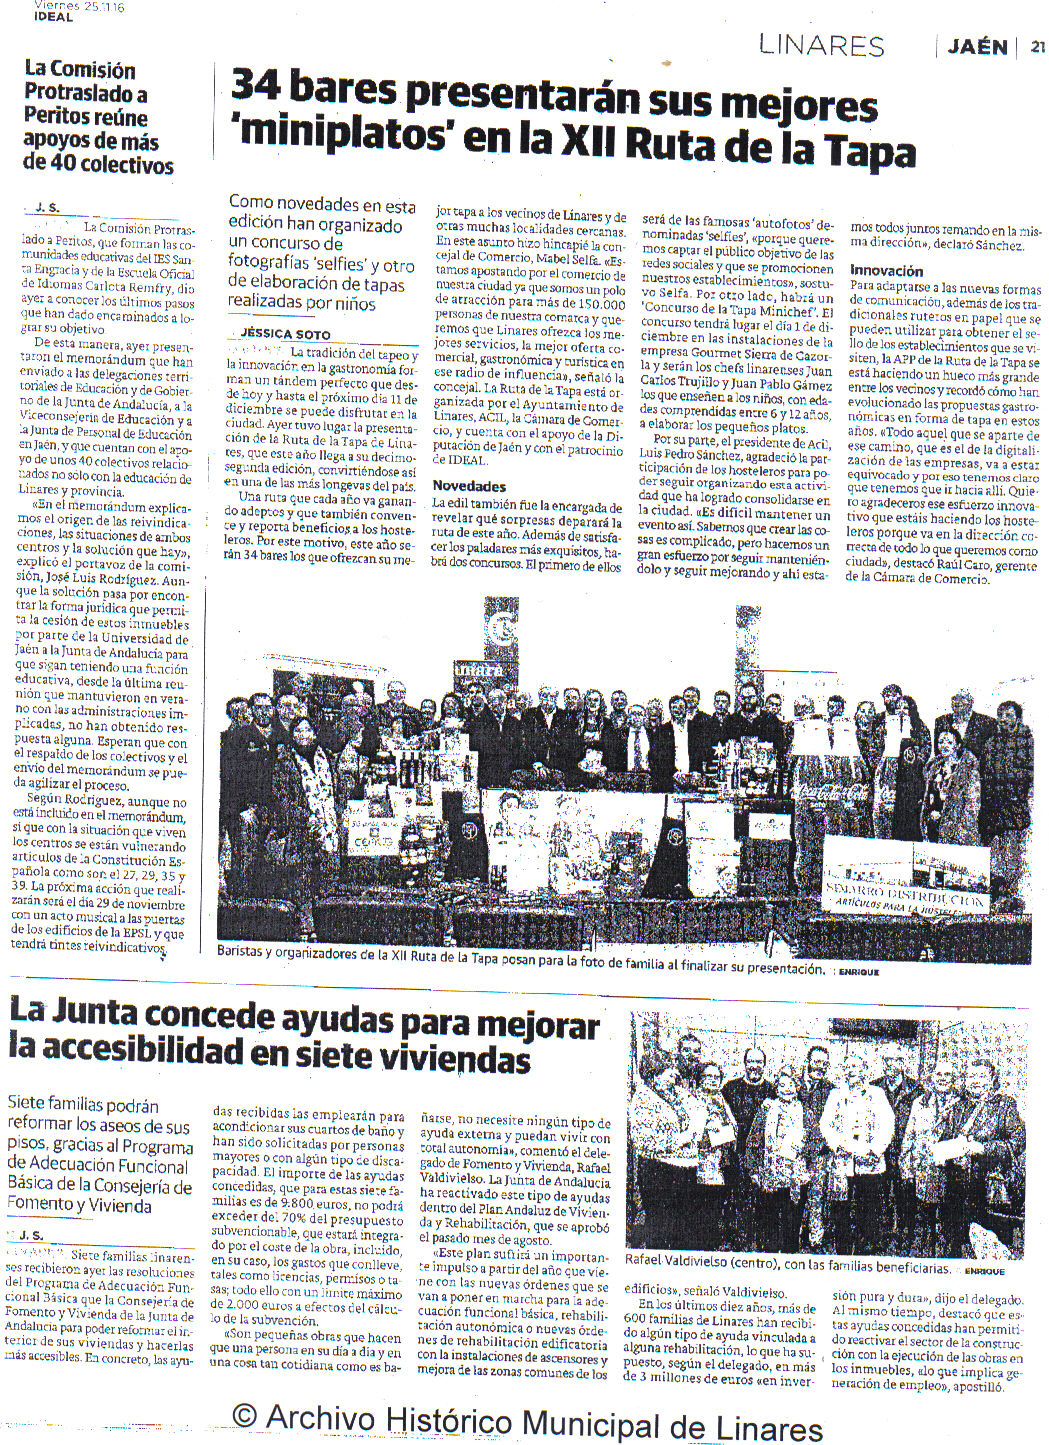 prensa-ideal-27-nov